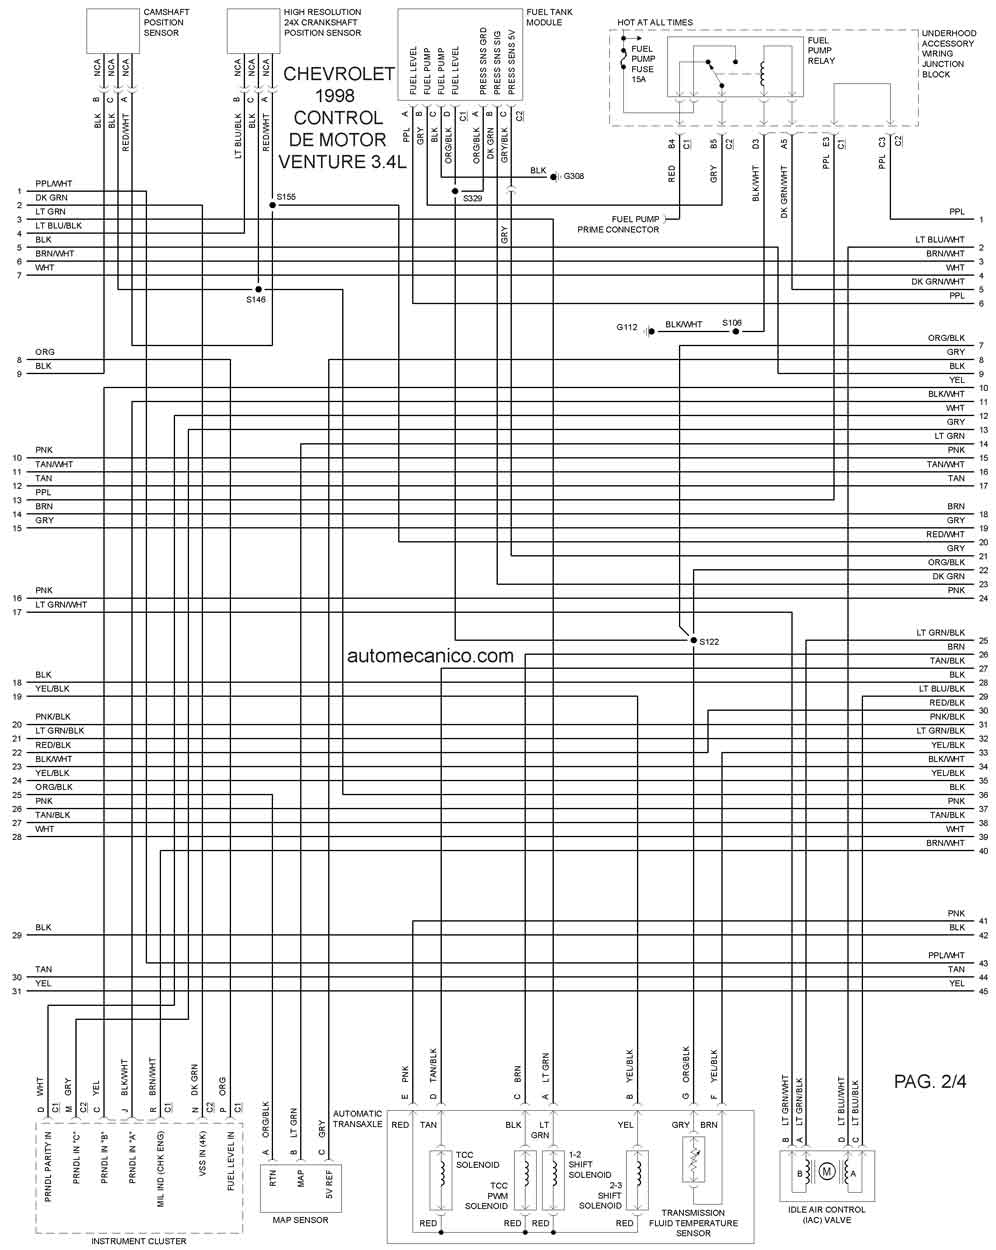 Showthread moreover Post 2005 Chevy Trailblazer Wiring Diagram 462713 moreover 7vd42 Chevrolet Impala 2006 Chevy Impala 3 5 Engine further P0502 buick further 1pzxk 99 Suburban Hot Water Heater Core Relay. on 2005 chevy malibu wiring diagram